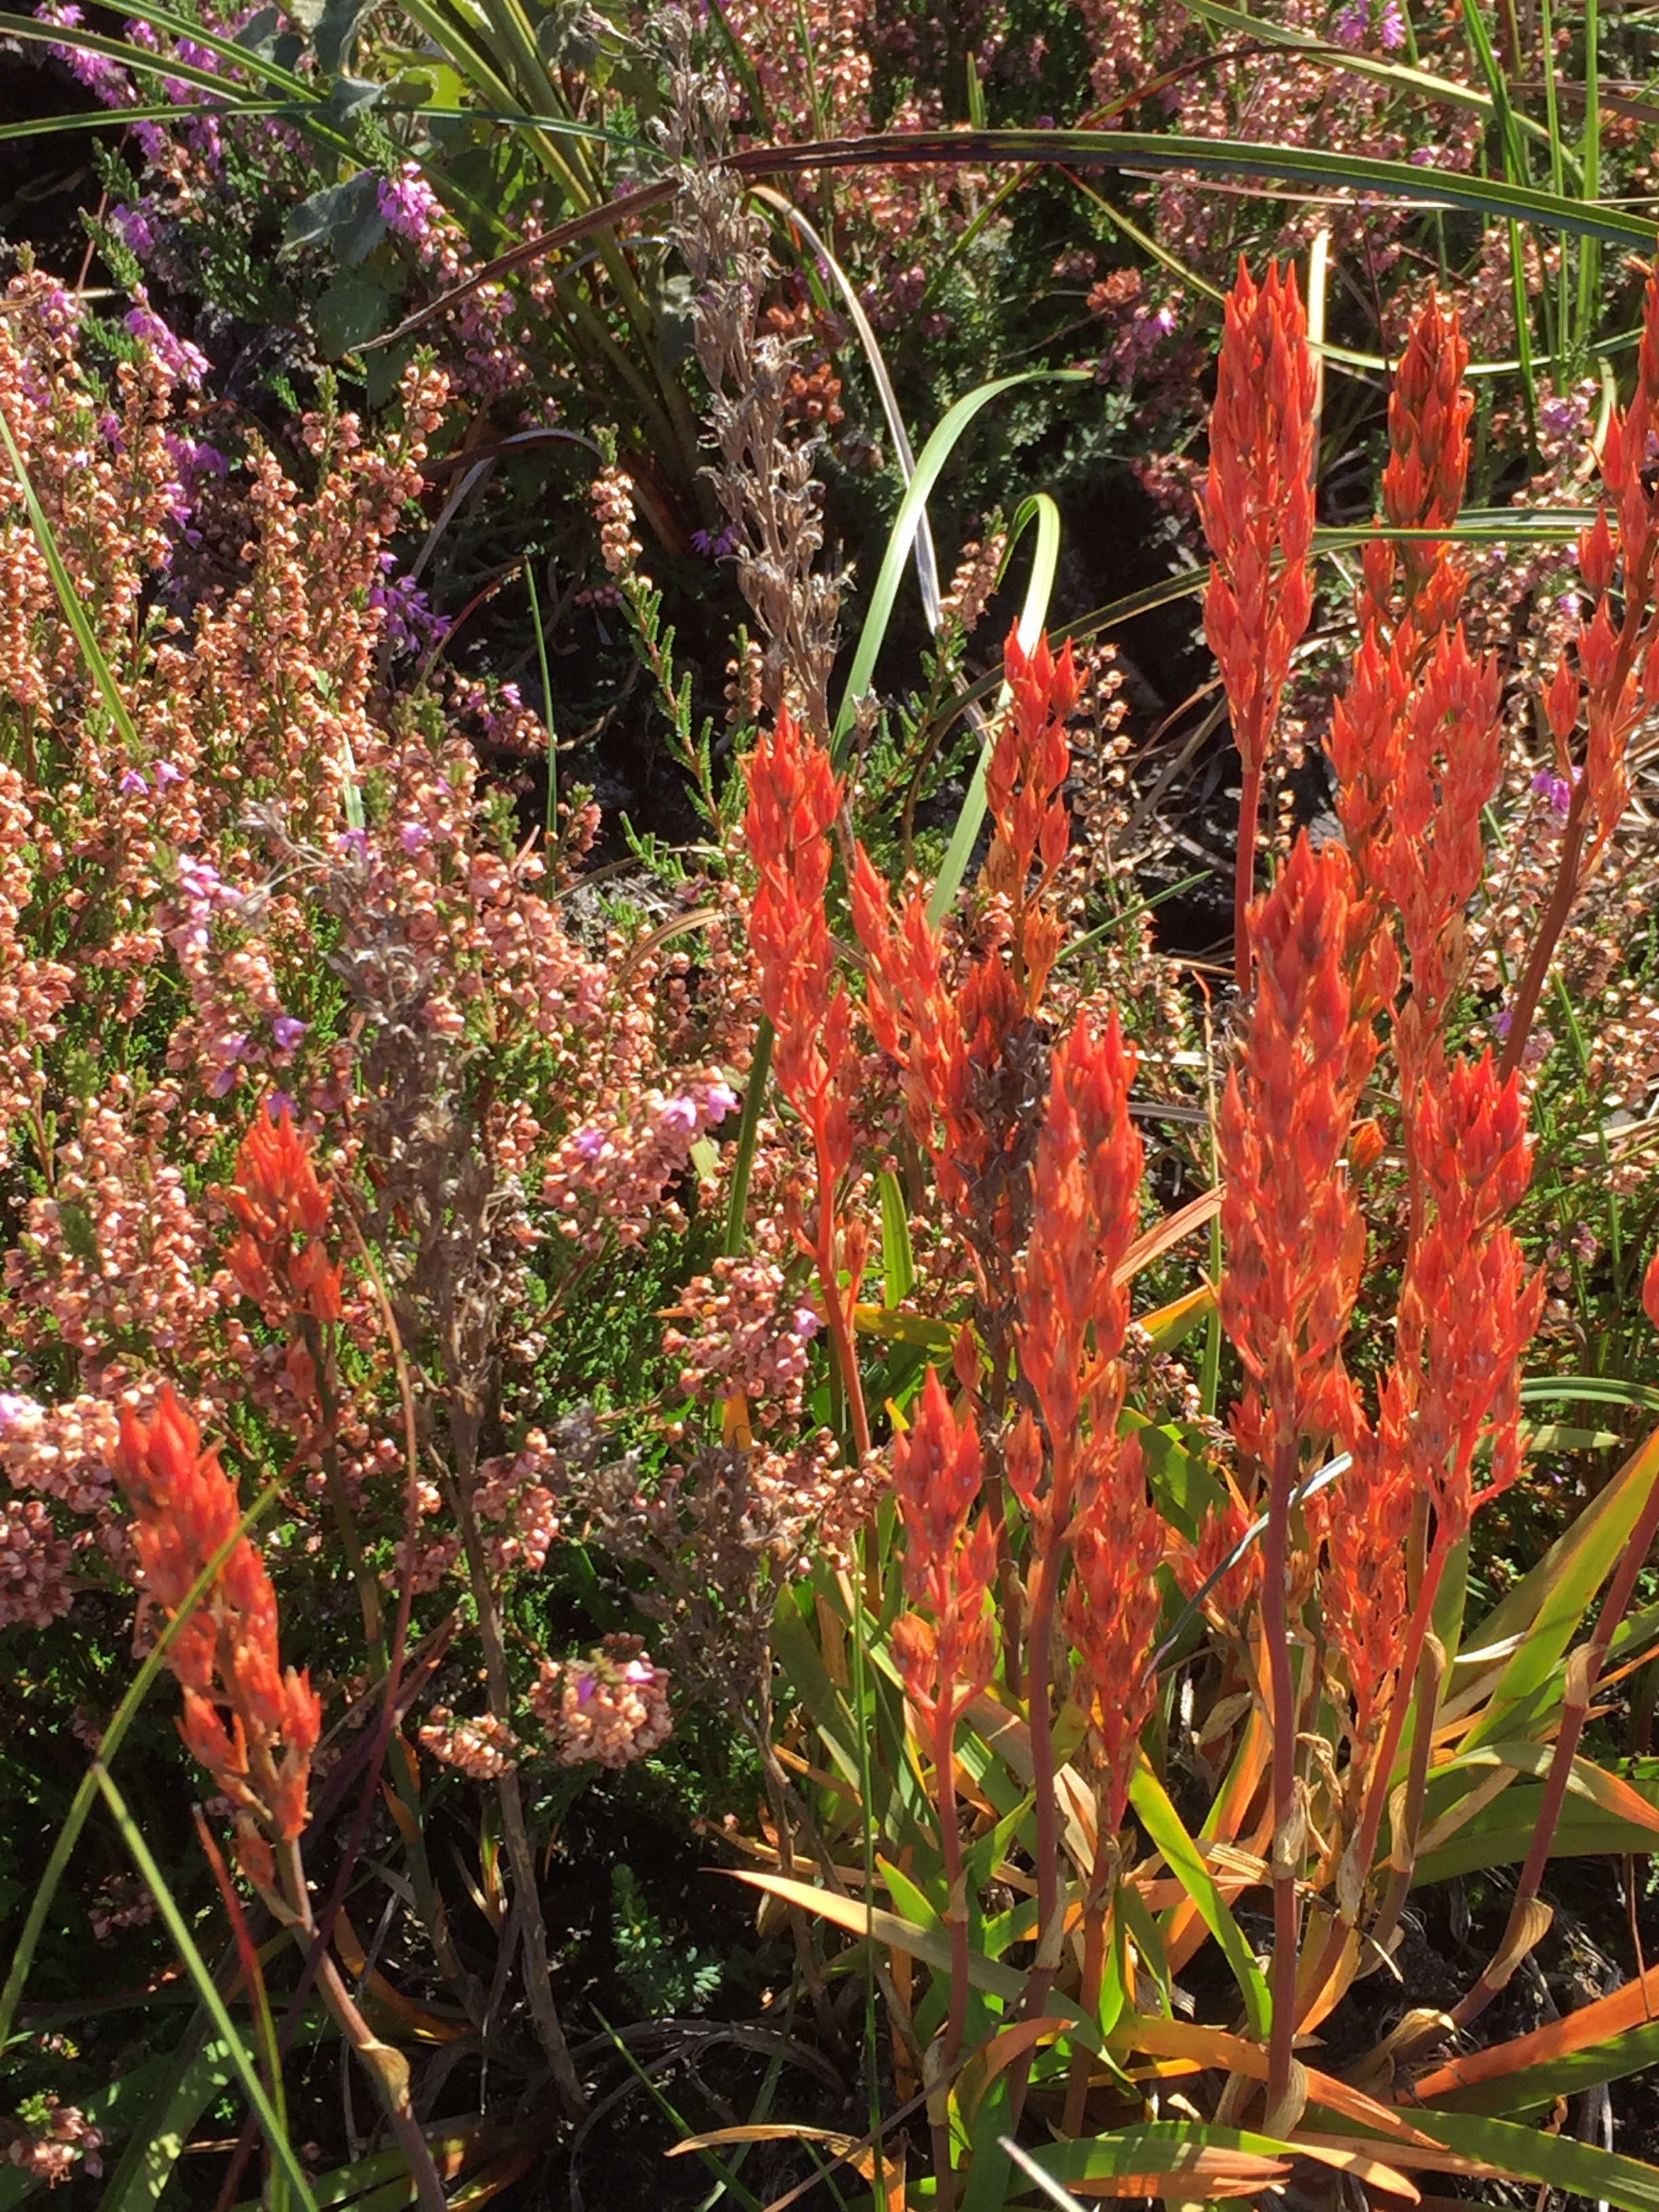 Yellow Bog Asphodel with striking autumn colour in early September